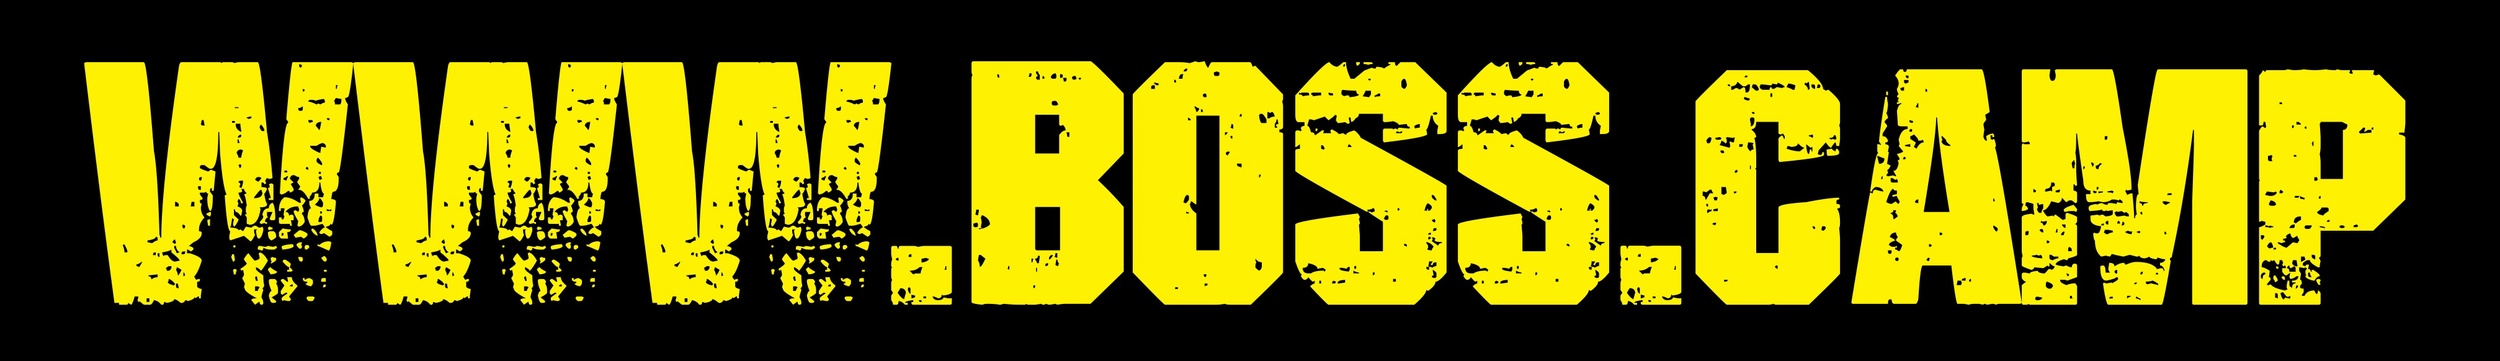 If you're a new manager find out how to make work work at www.boss.camp Jpeg